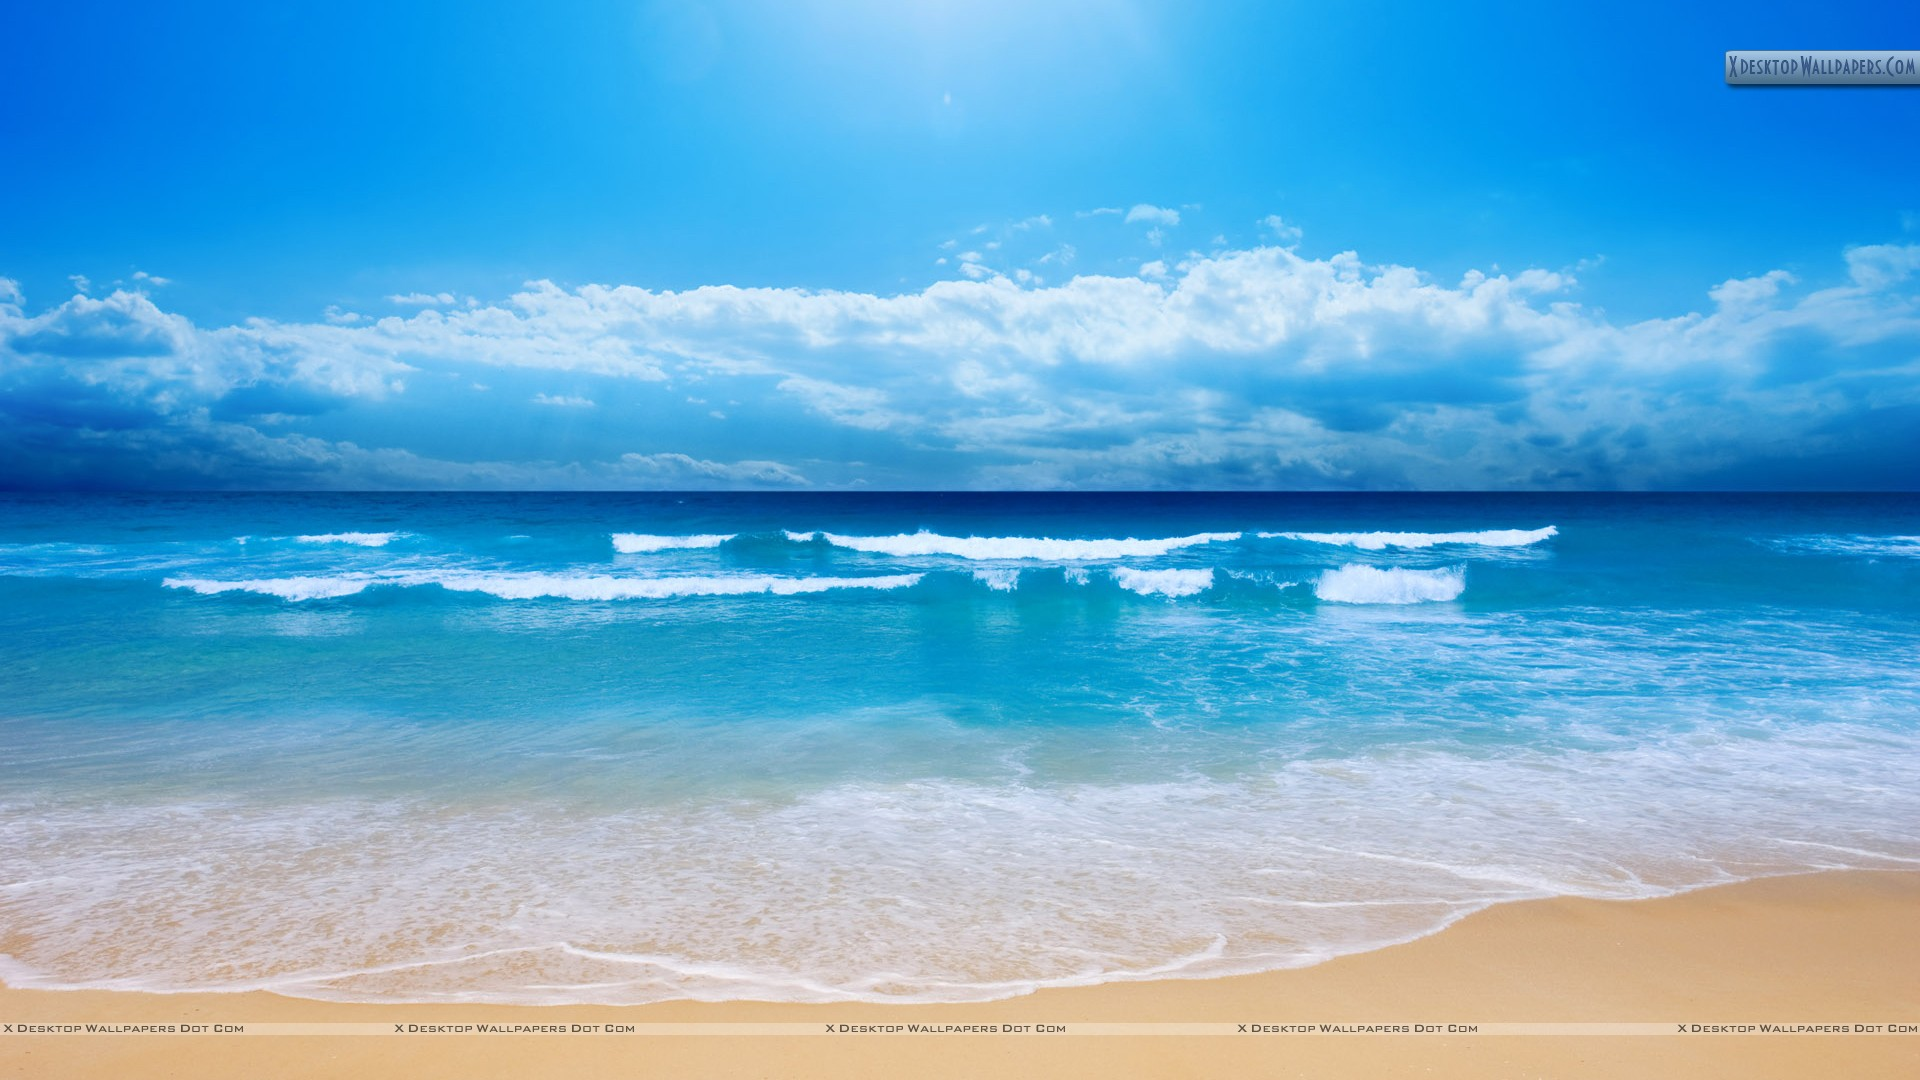 Do water movement in the seashore represent waves? - Physics Stack ...